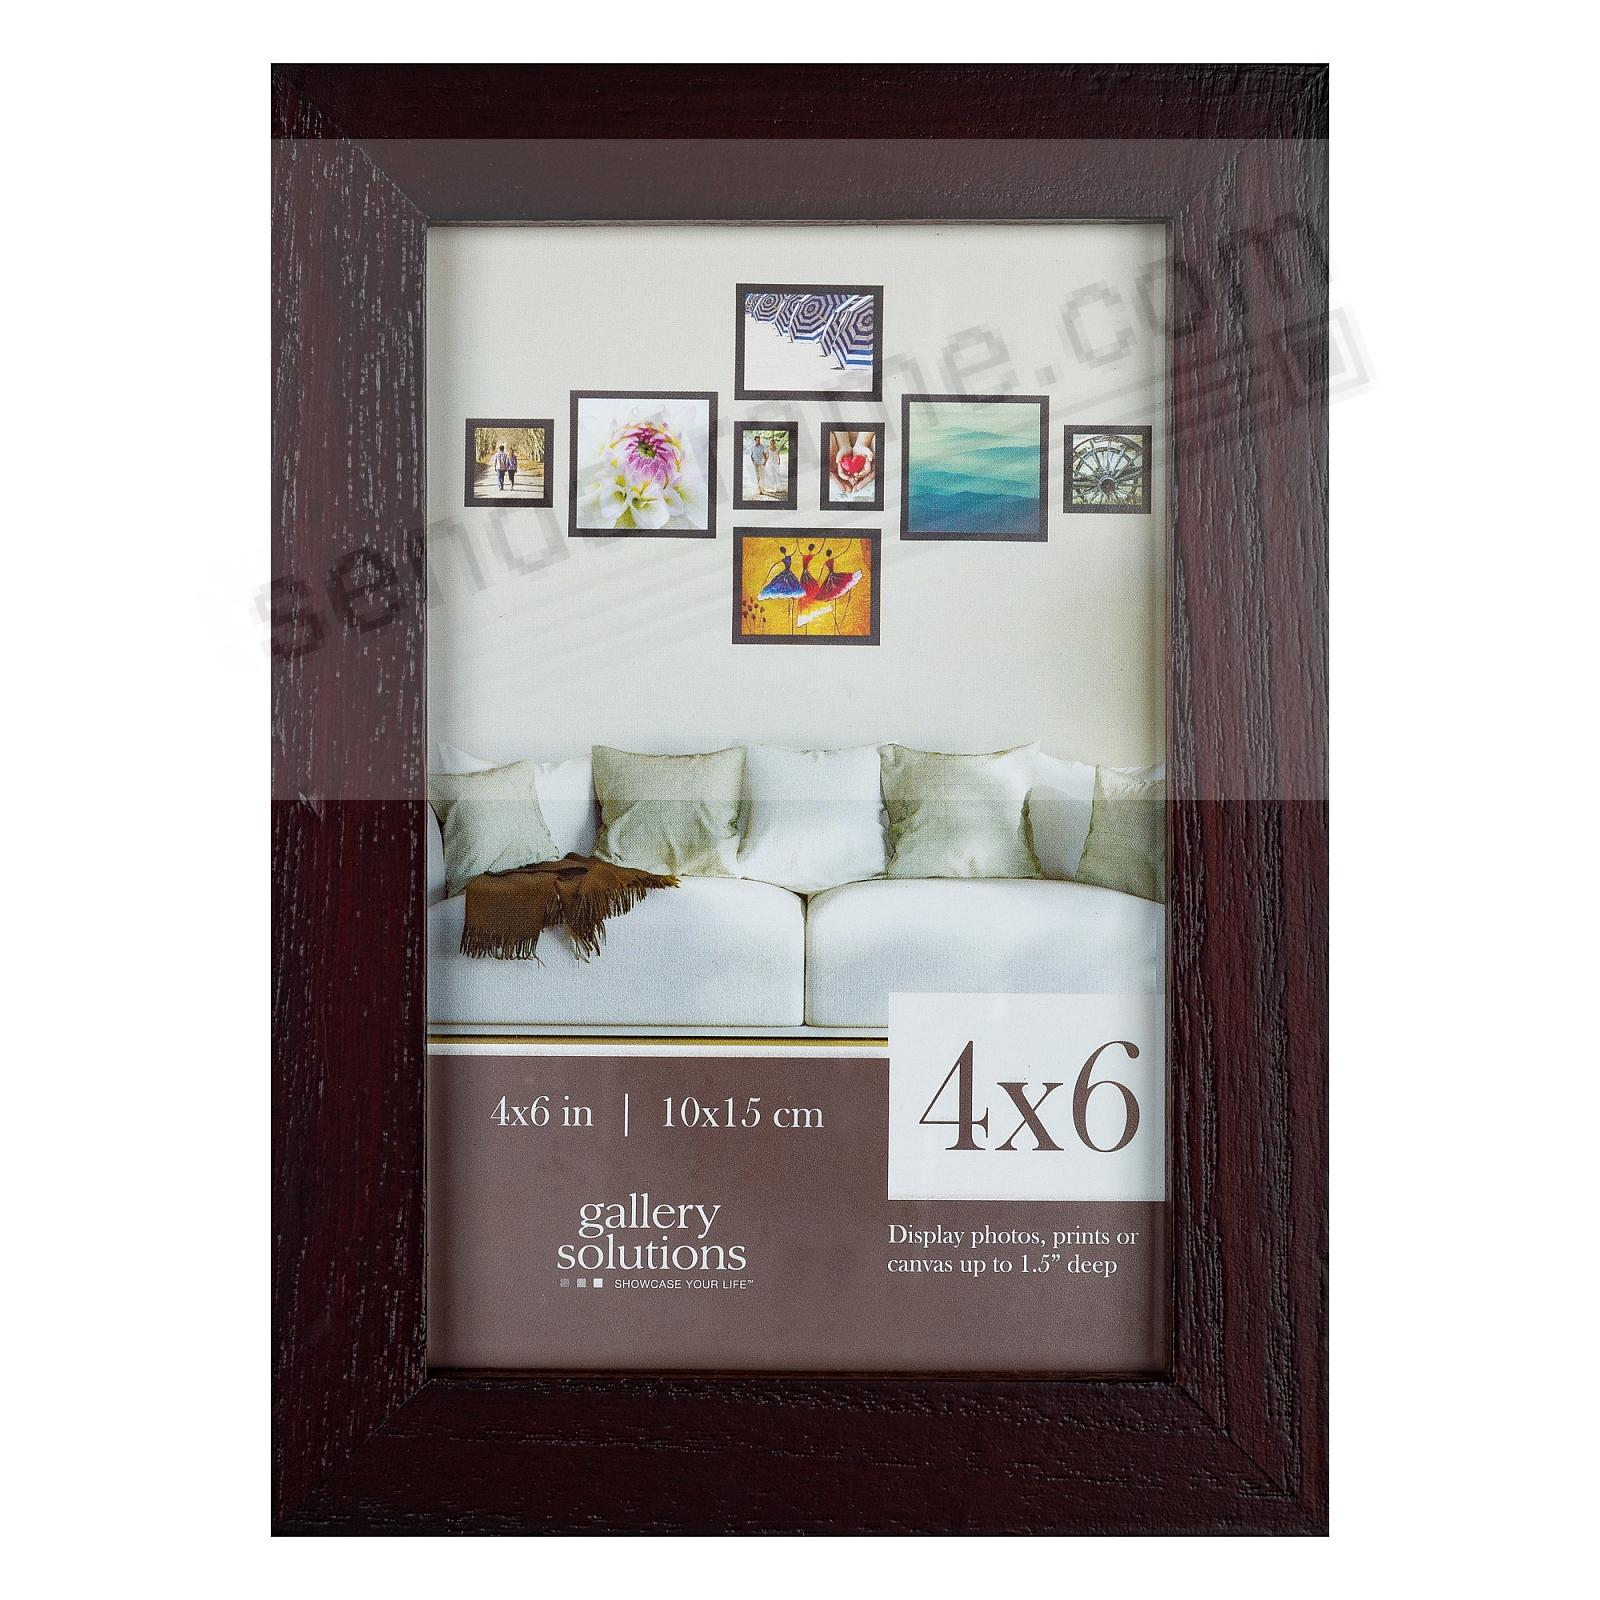 Walnut GALLERY 4x6 frame by Gallery Solutions®